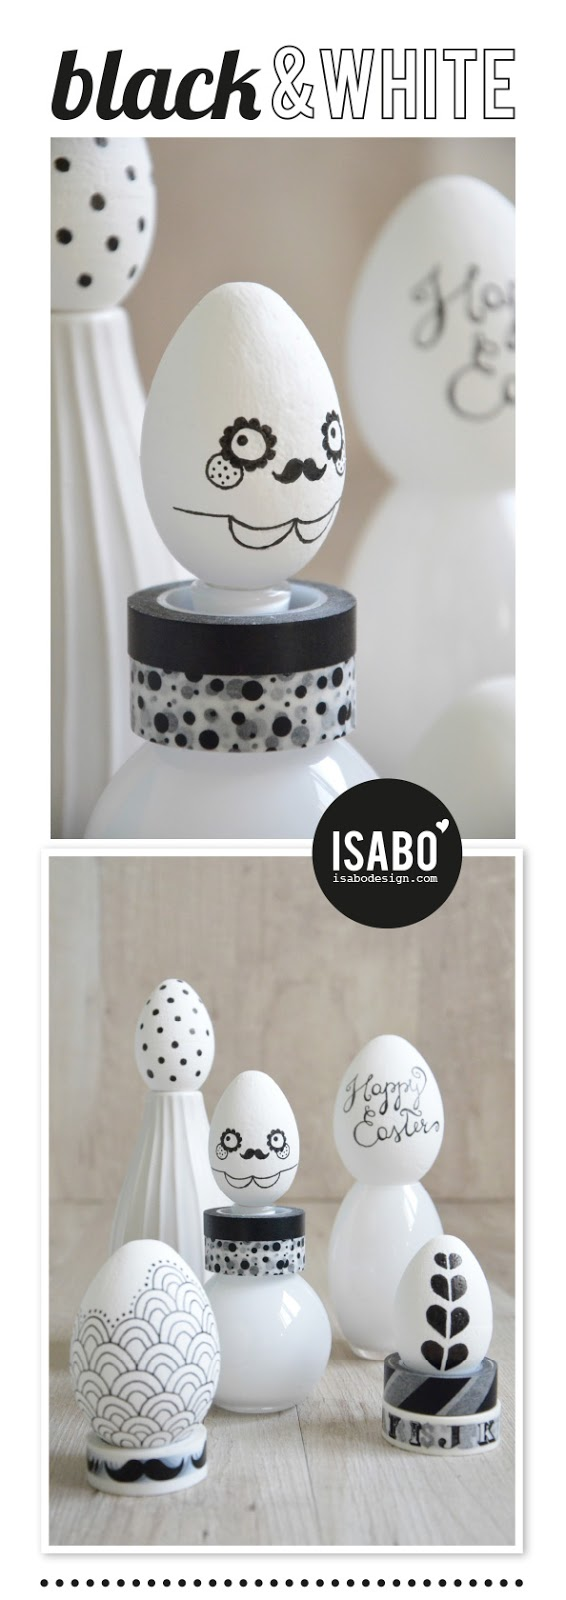 isabo-decorated-easter-eggs-black-white-1